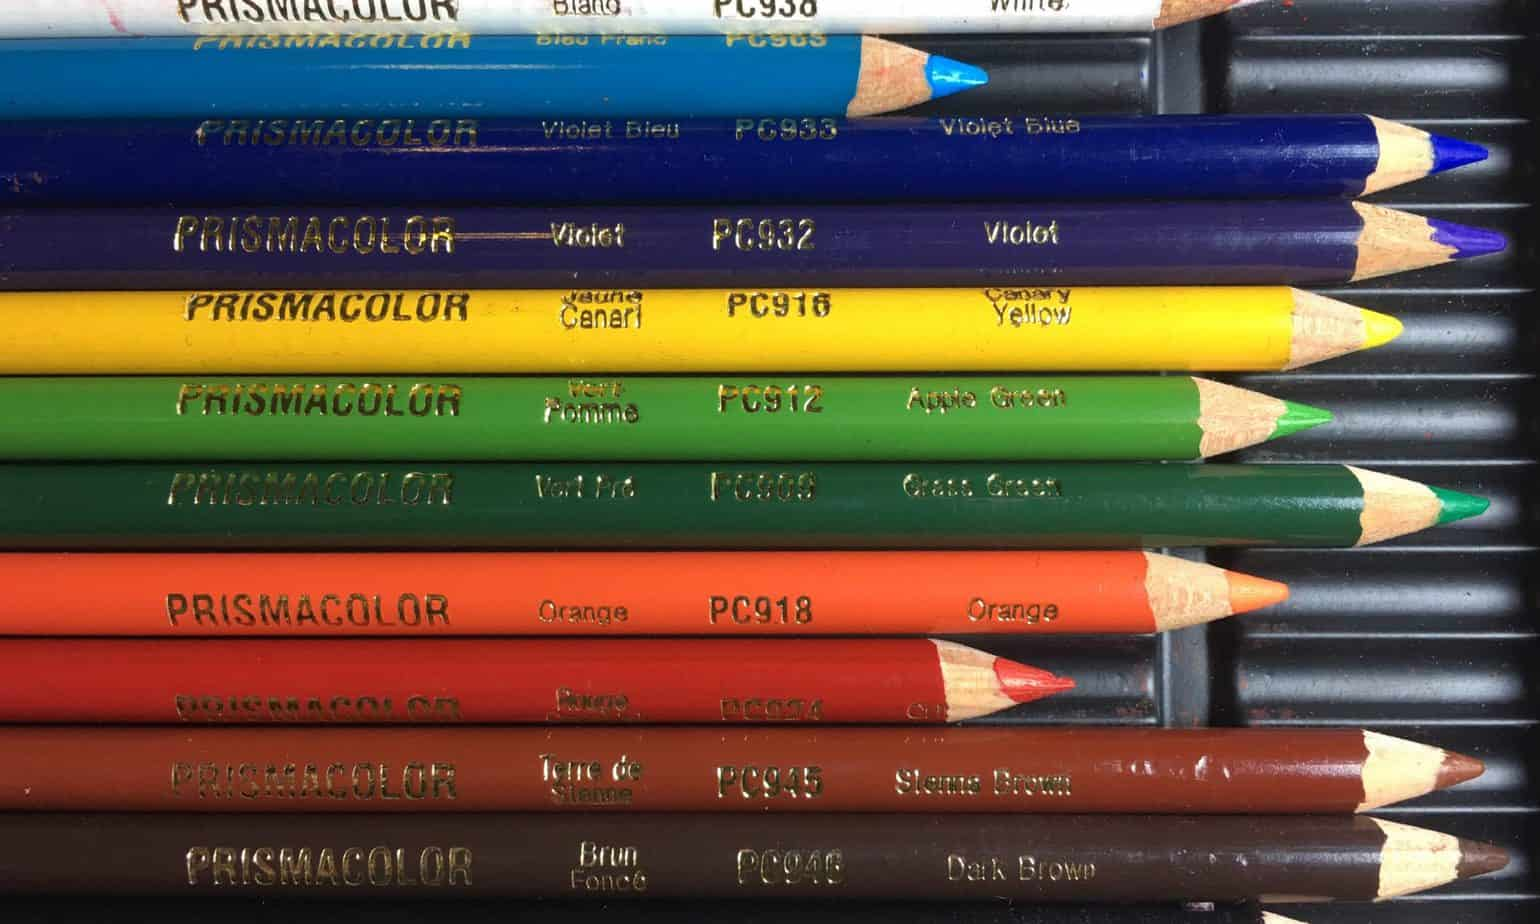 Prismacolor Premier Pencils